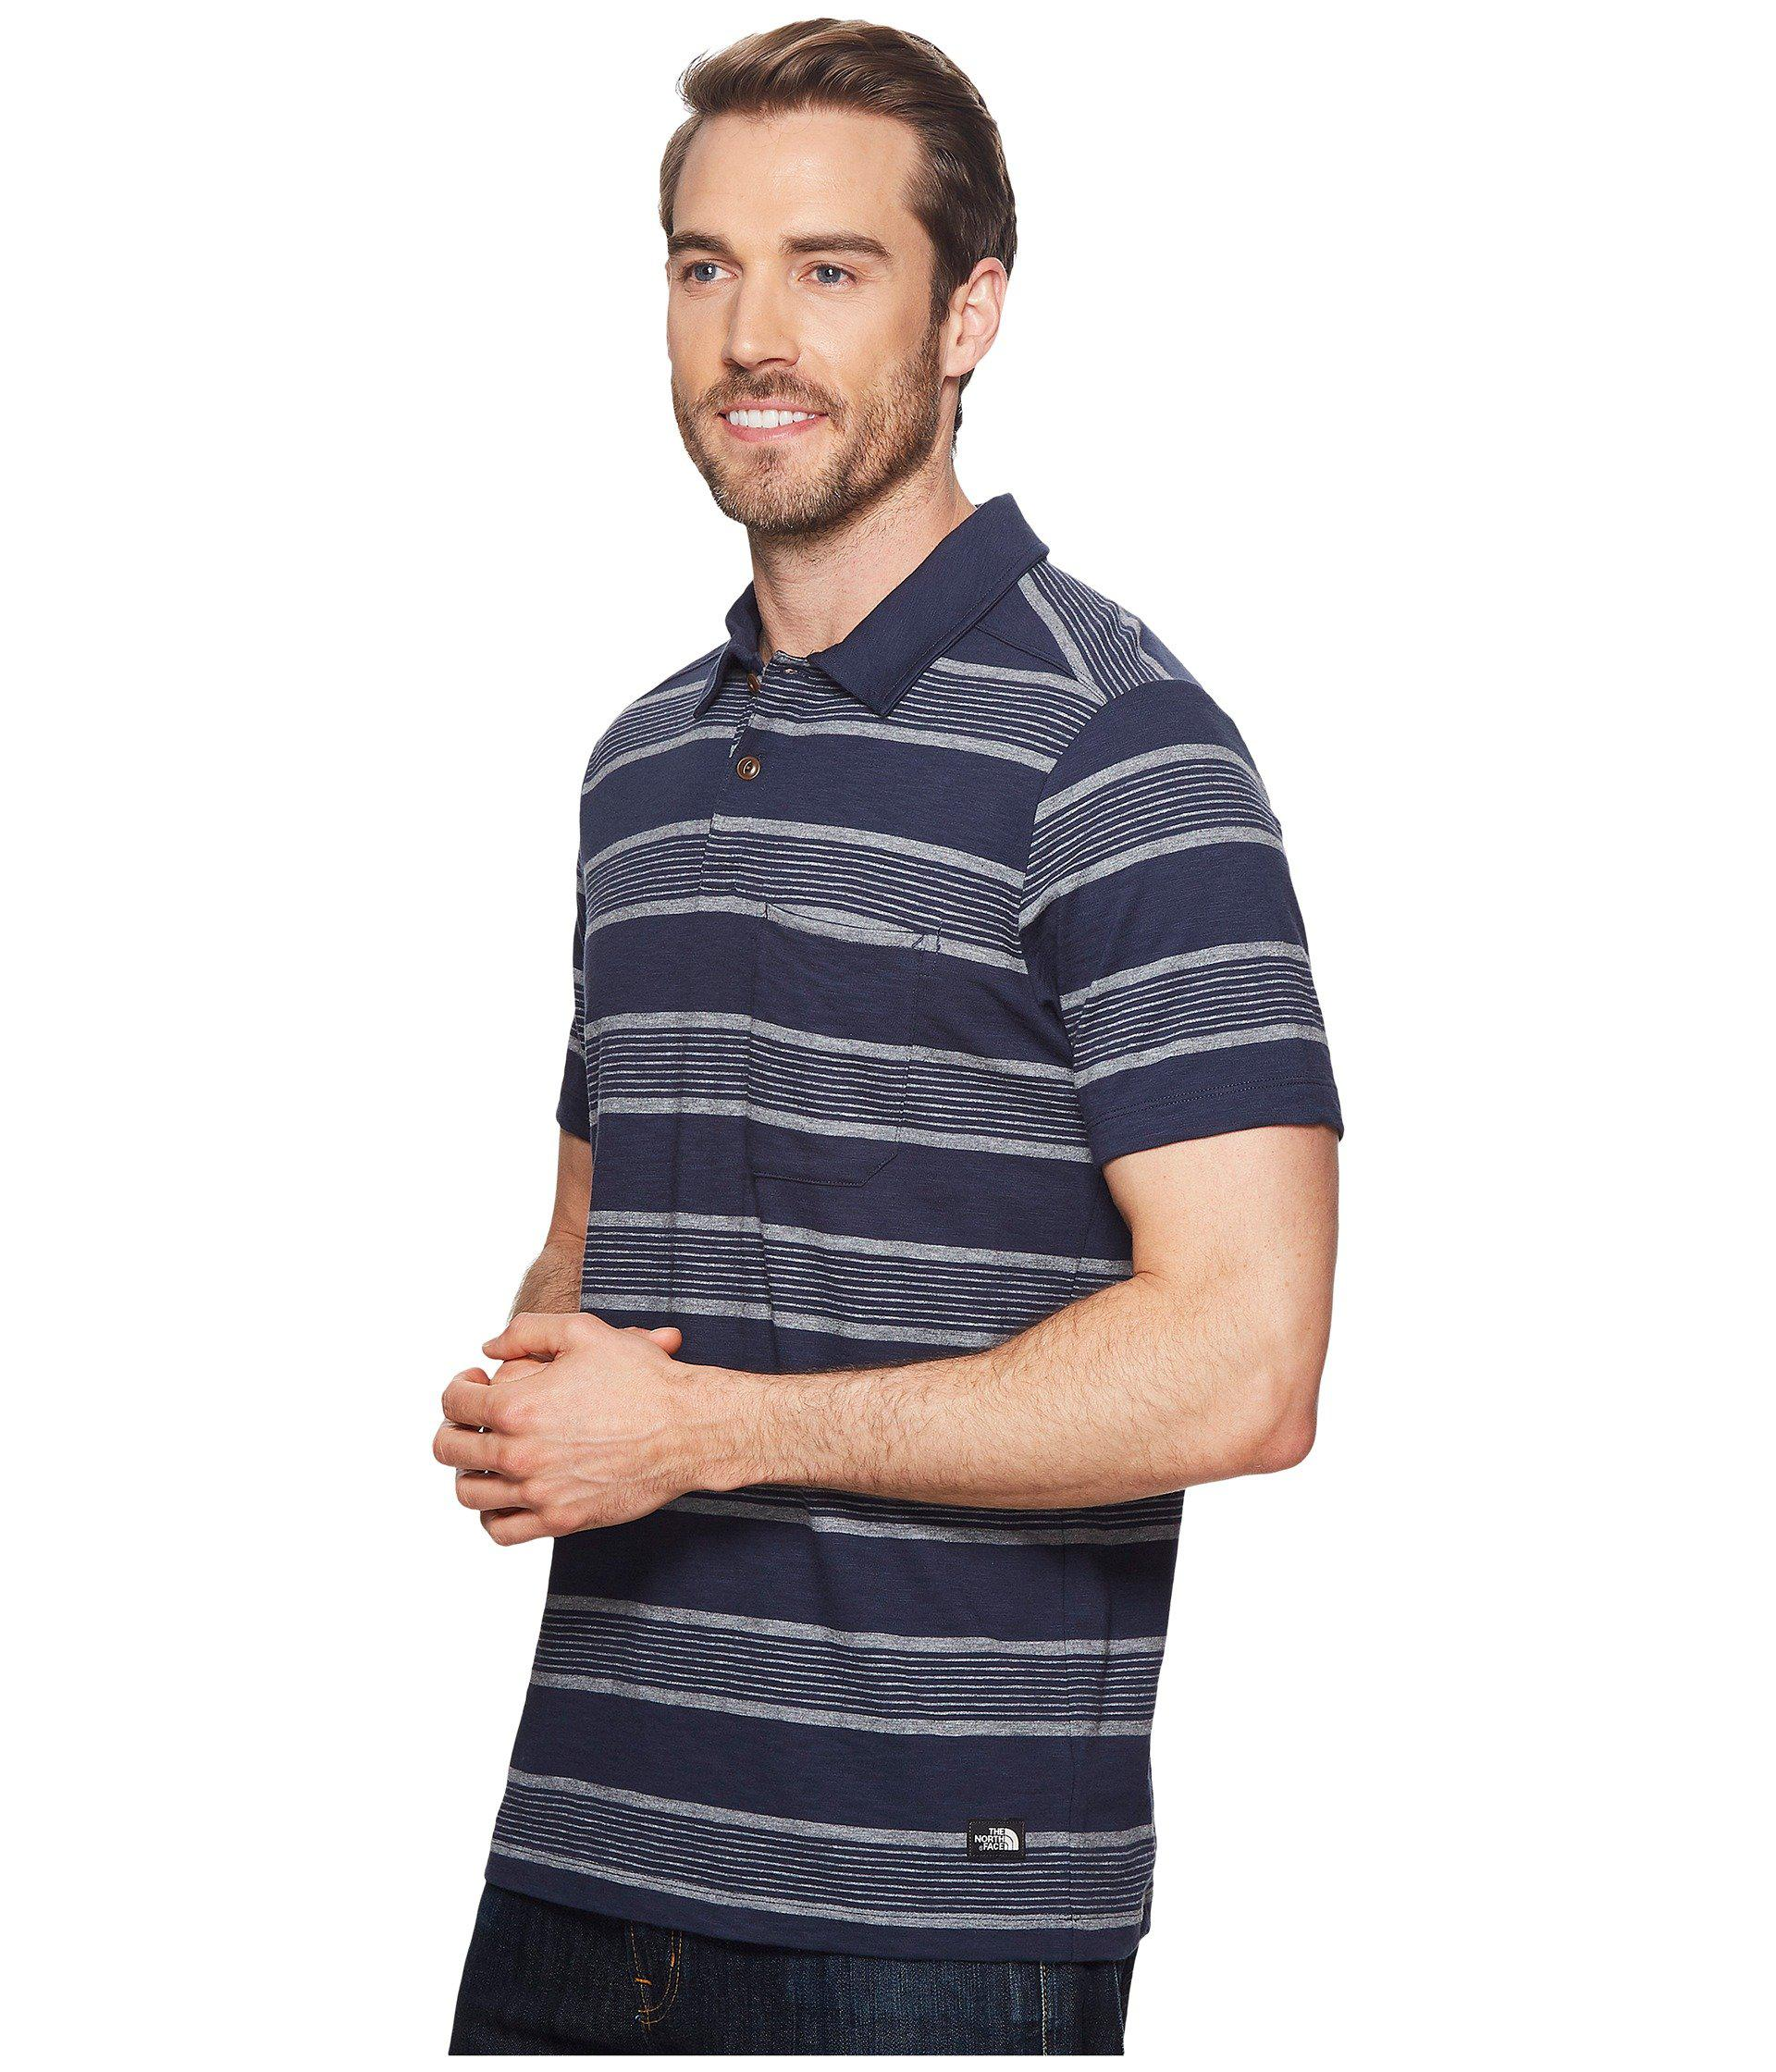 e5ef09b1 Lyst - The North Face Short Sleeve Cool Canyon Polo in Blue for Men - Save  29%